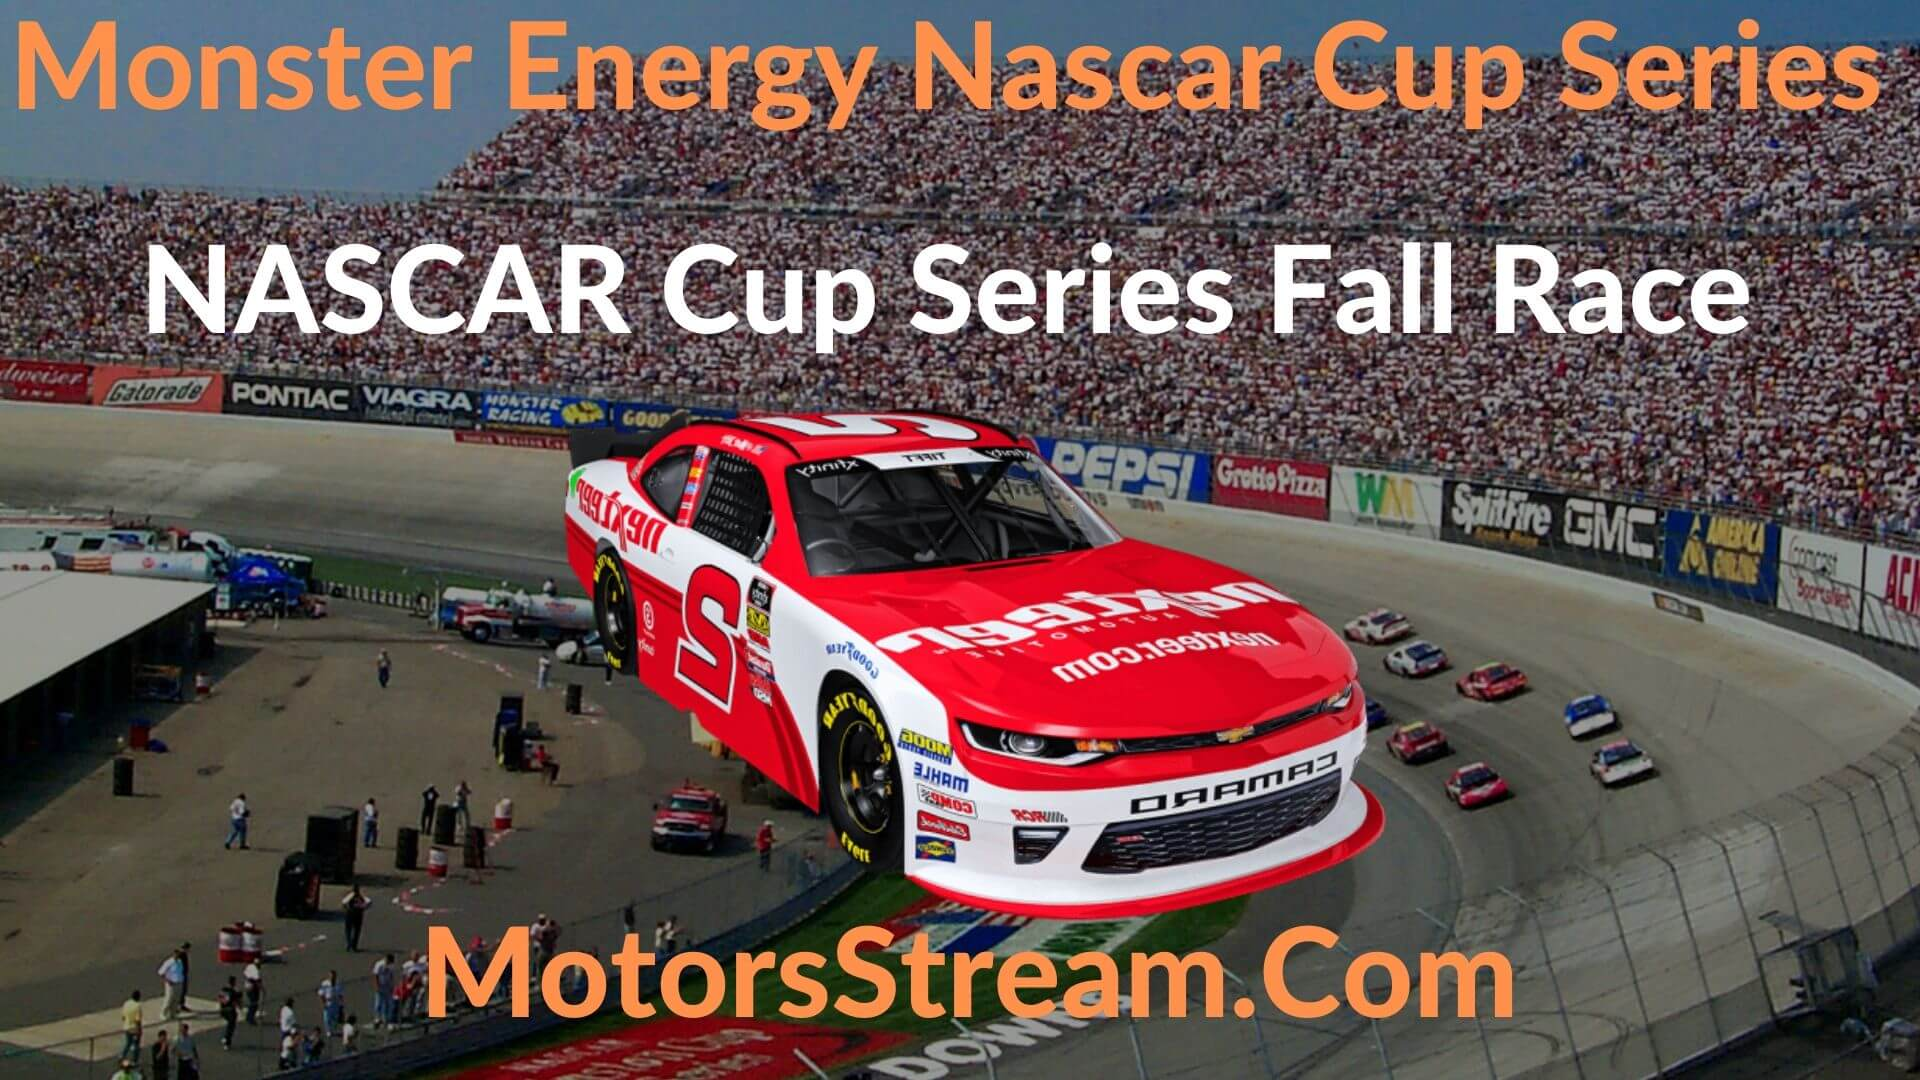 NASCAR Cup Series Fall Race Live Stream | NASCAR CUP 2020